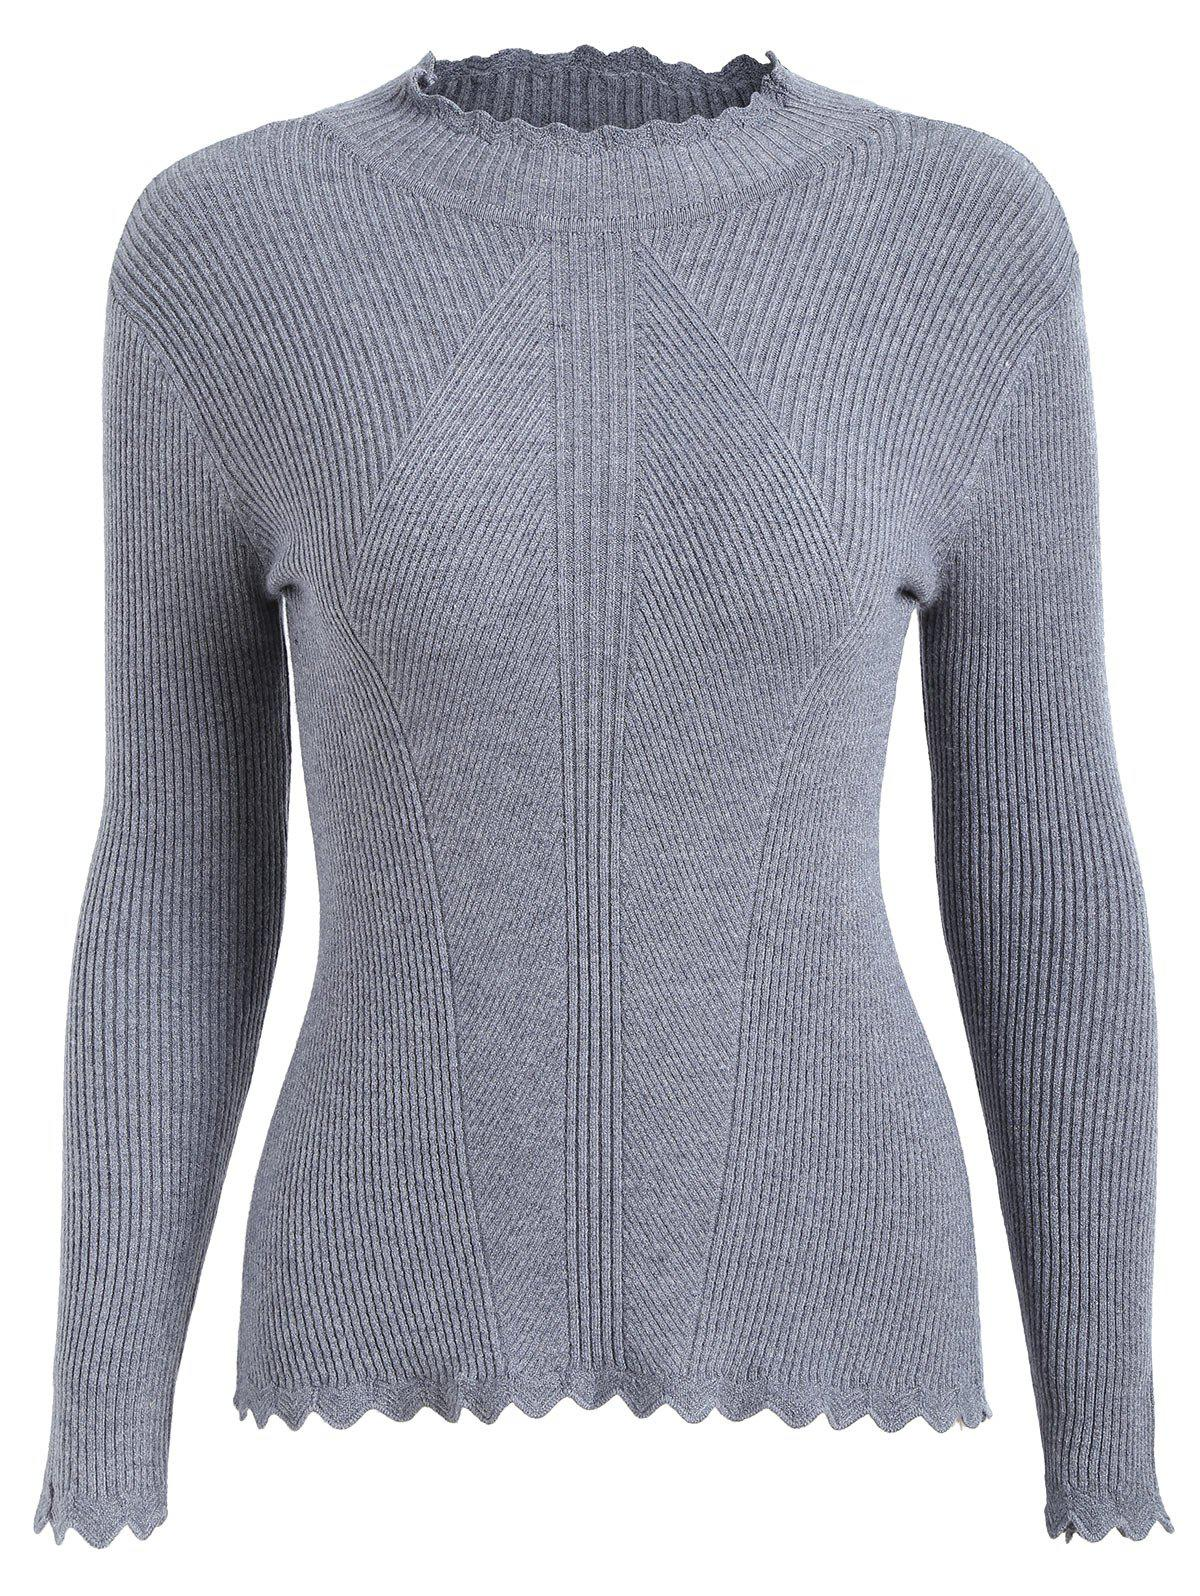 Plus Size High Neck Ribbed Scalloped Knitwear - GRAY 3XL